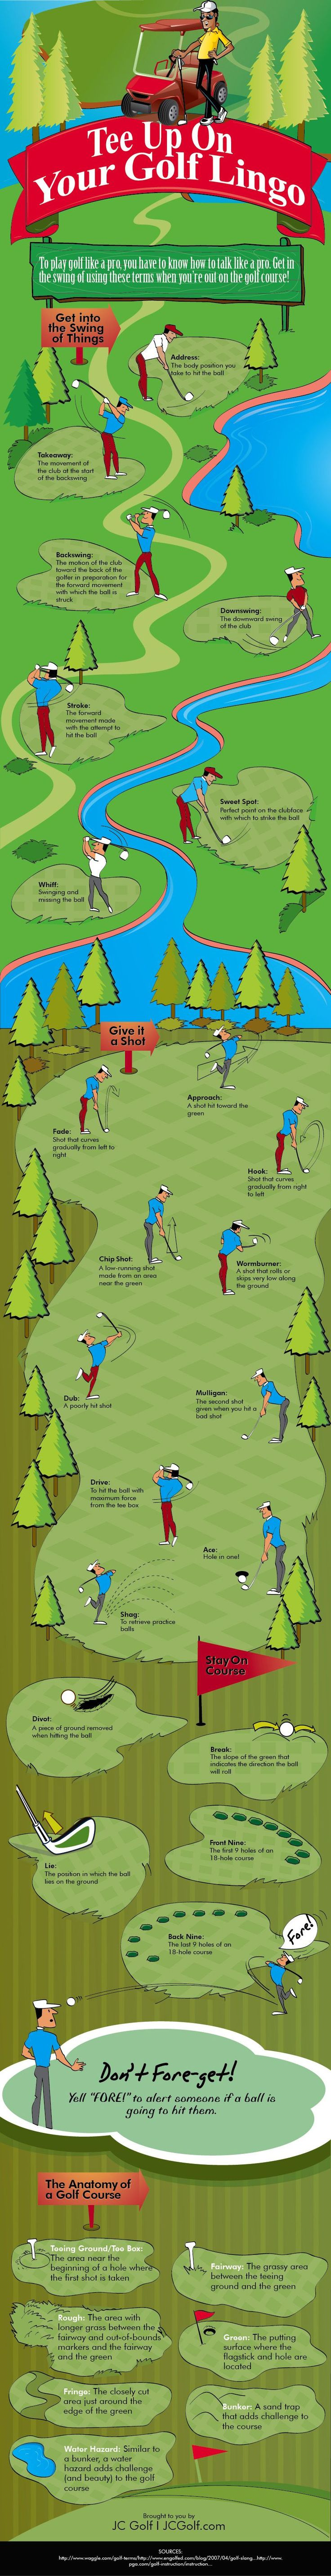 To play golf like a pro, you have to know how to talk like a pro. Get in the swing of using these terms when you're out on the golf course!